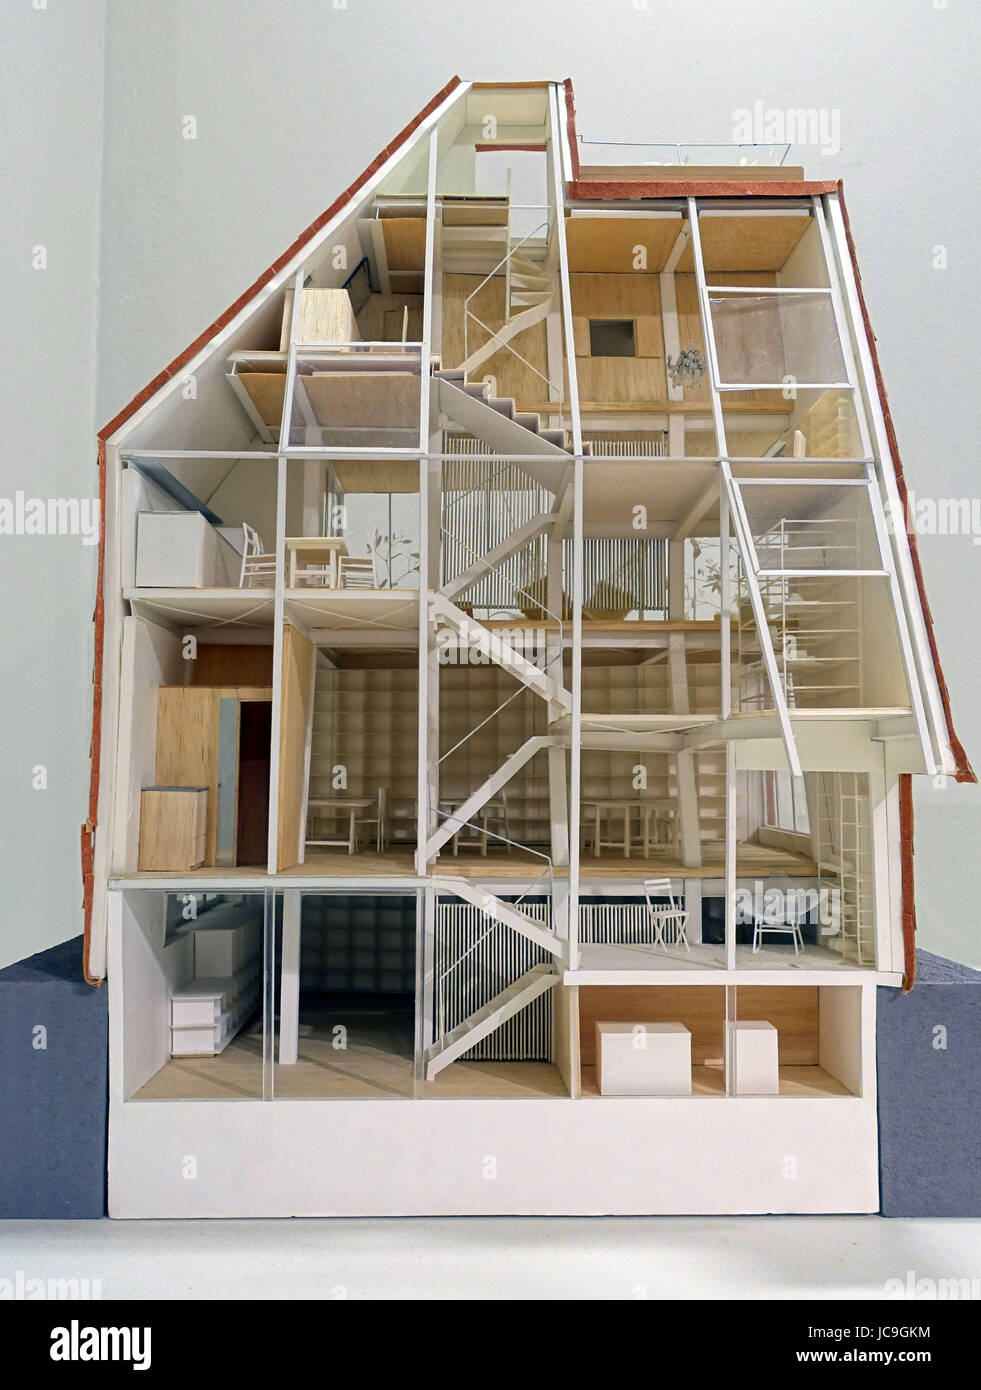 120 Scale Model Of A House Designed By Atelier Bow Wow At The Japanese Exhibition Barbican Gallery City London